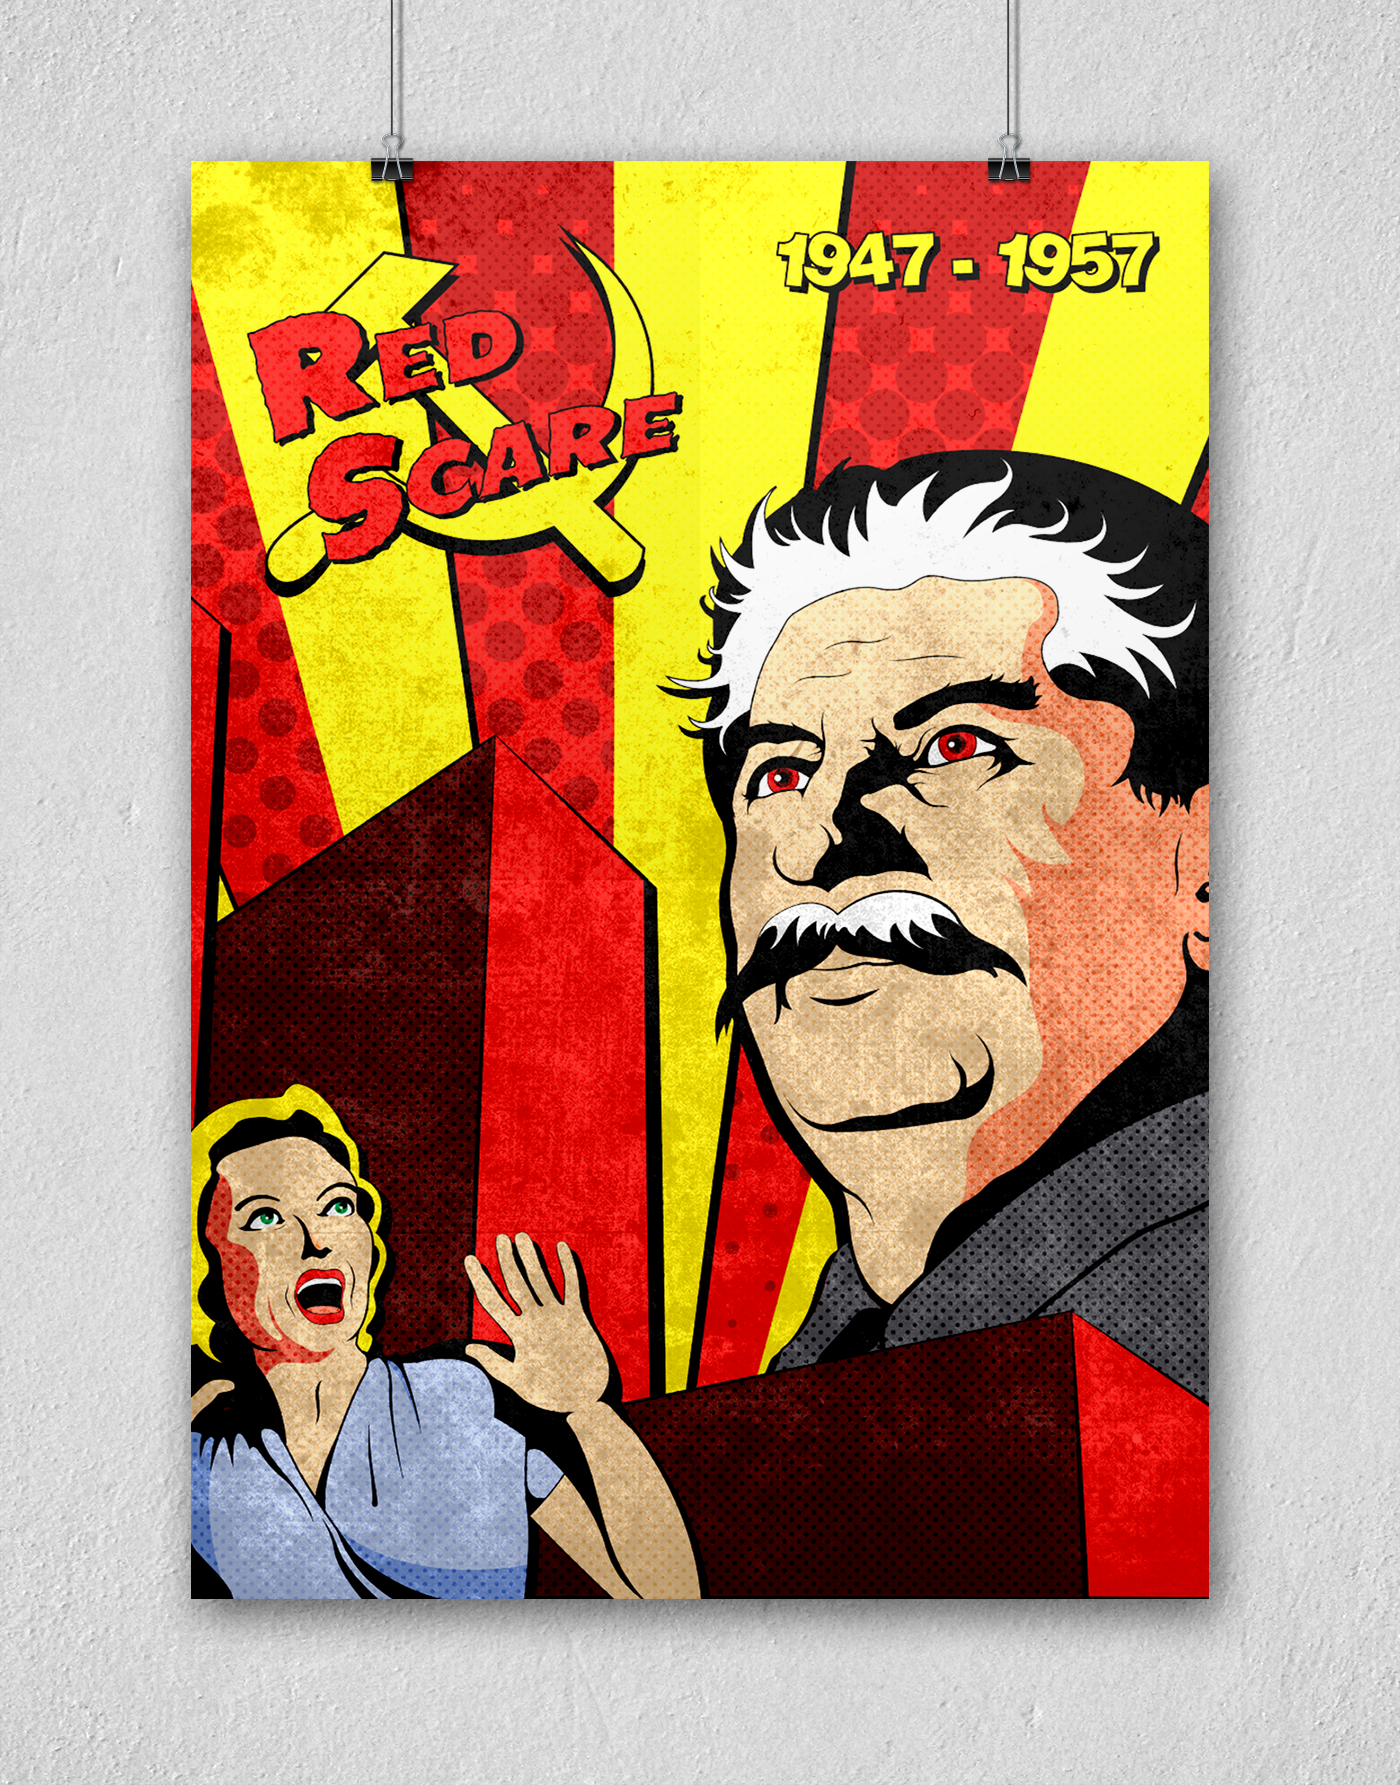 Historical Event Poster - The Red Scare